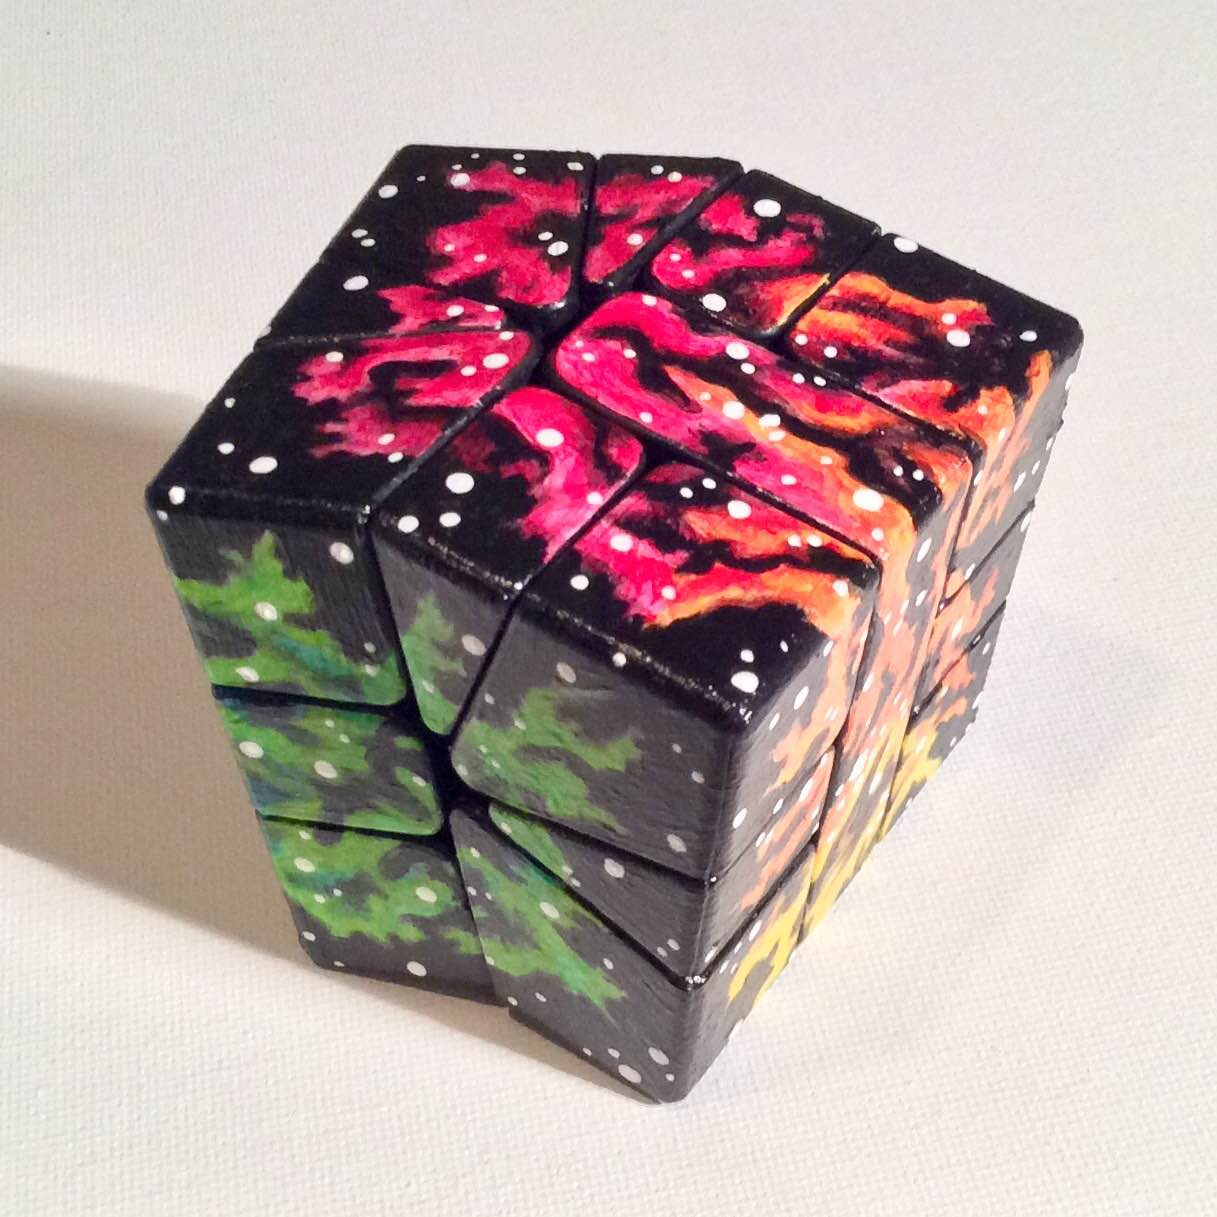 I Gave Up Canvas, Now I Paint On Rubik's Cubes.